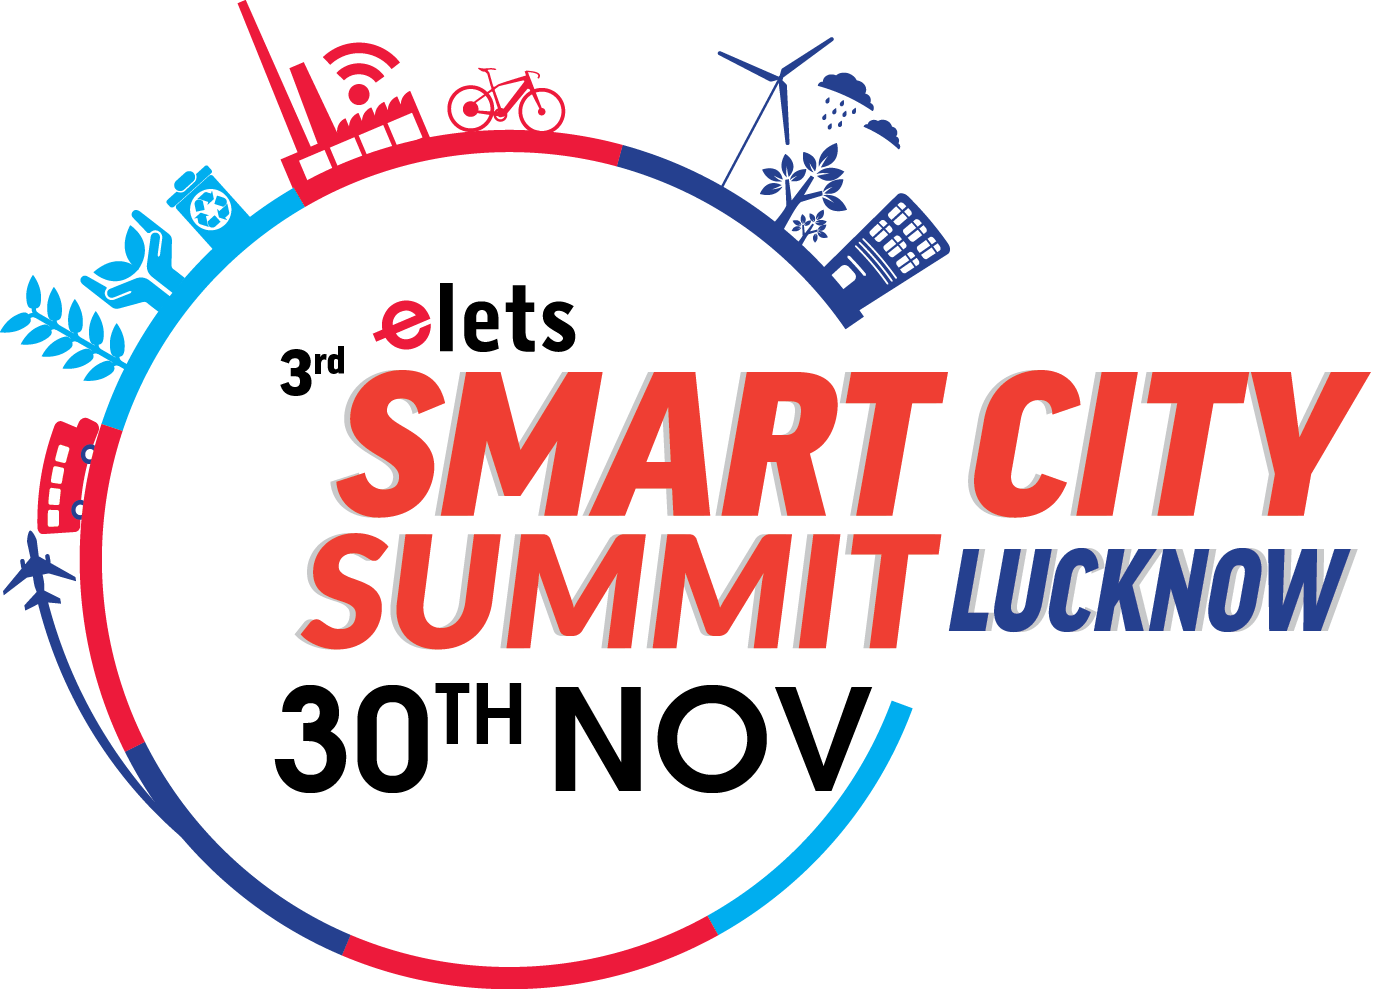 Smart City Summit, Lucknow